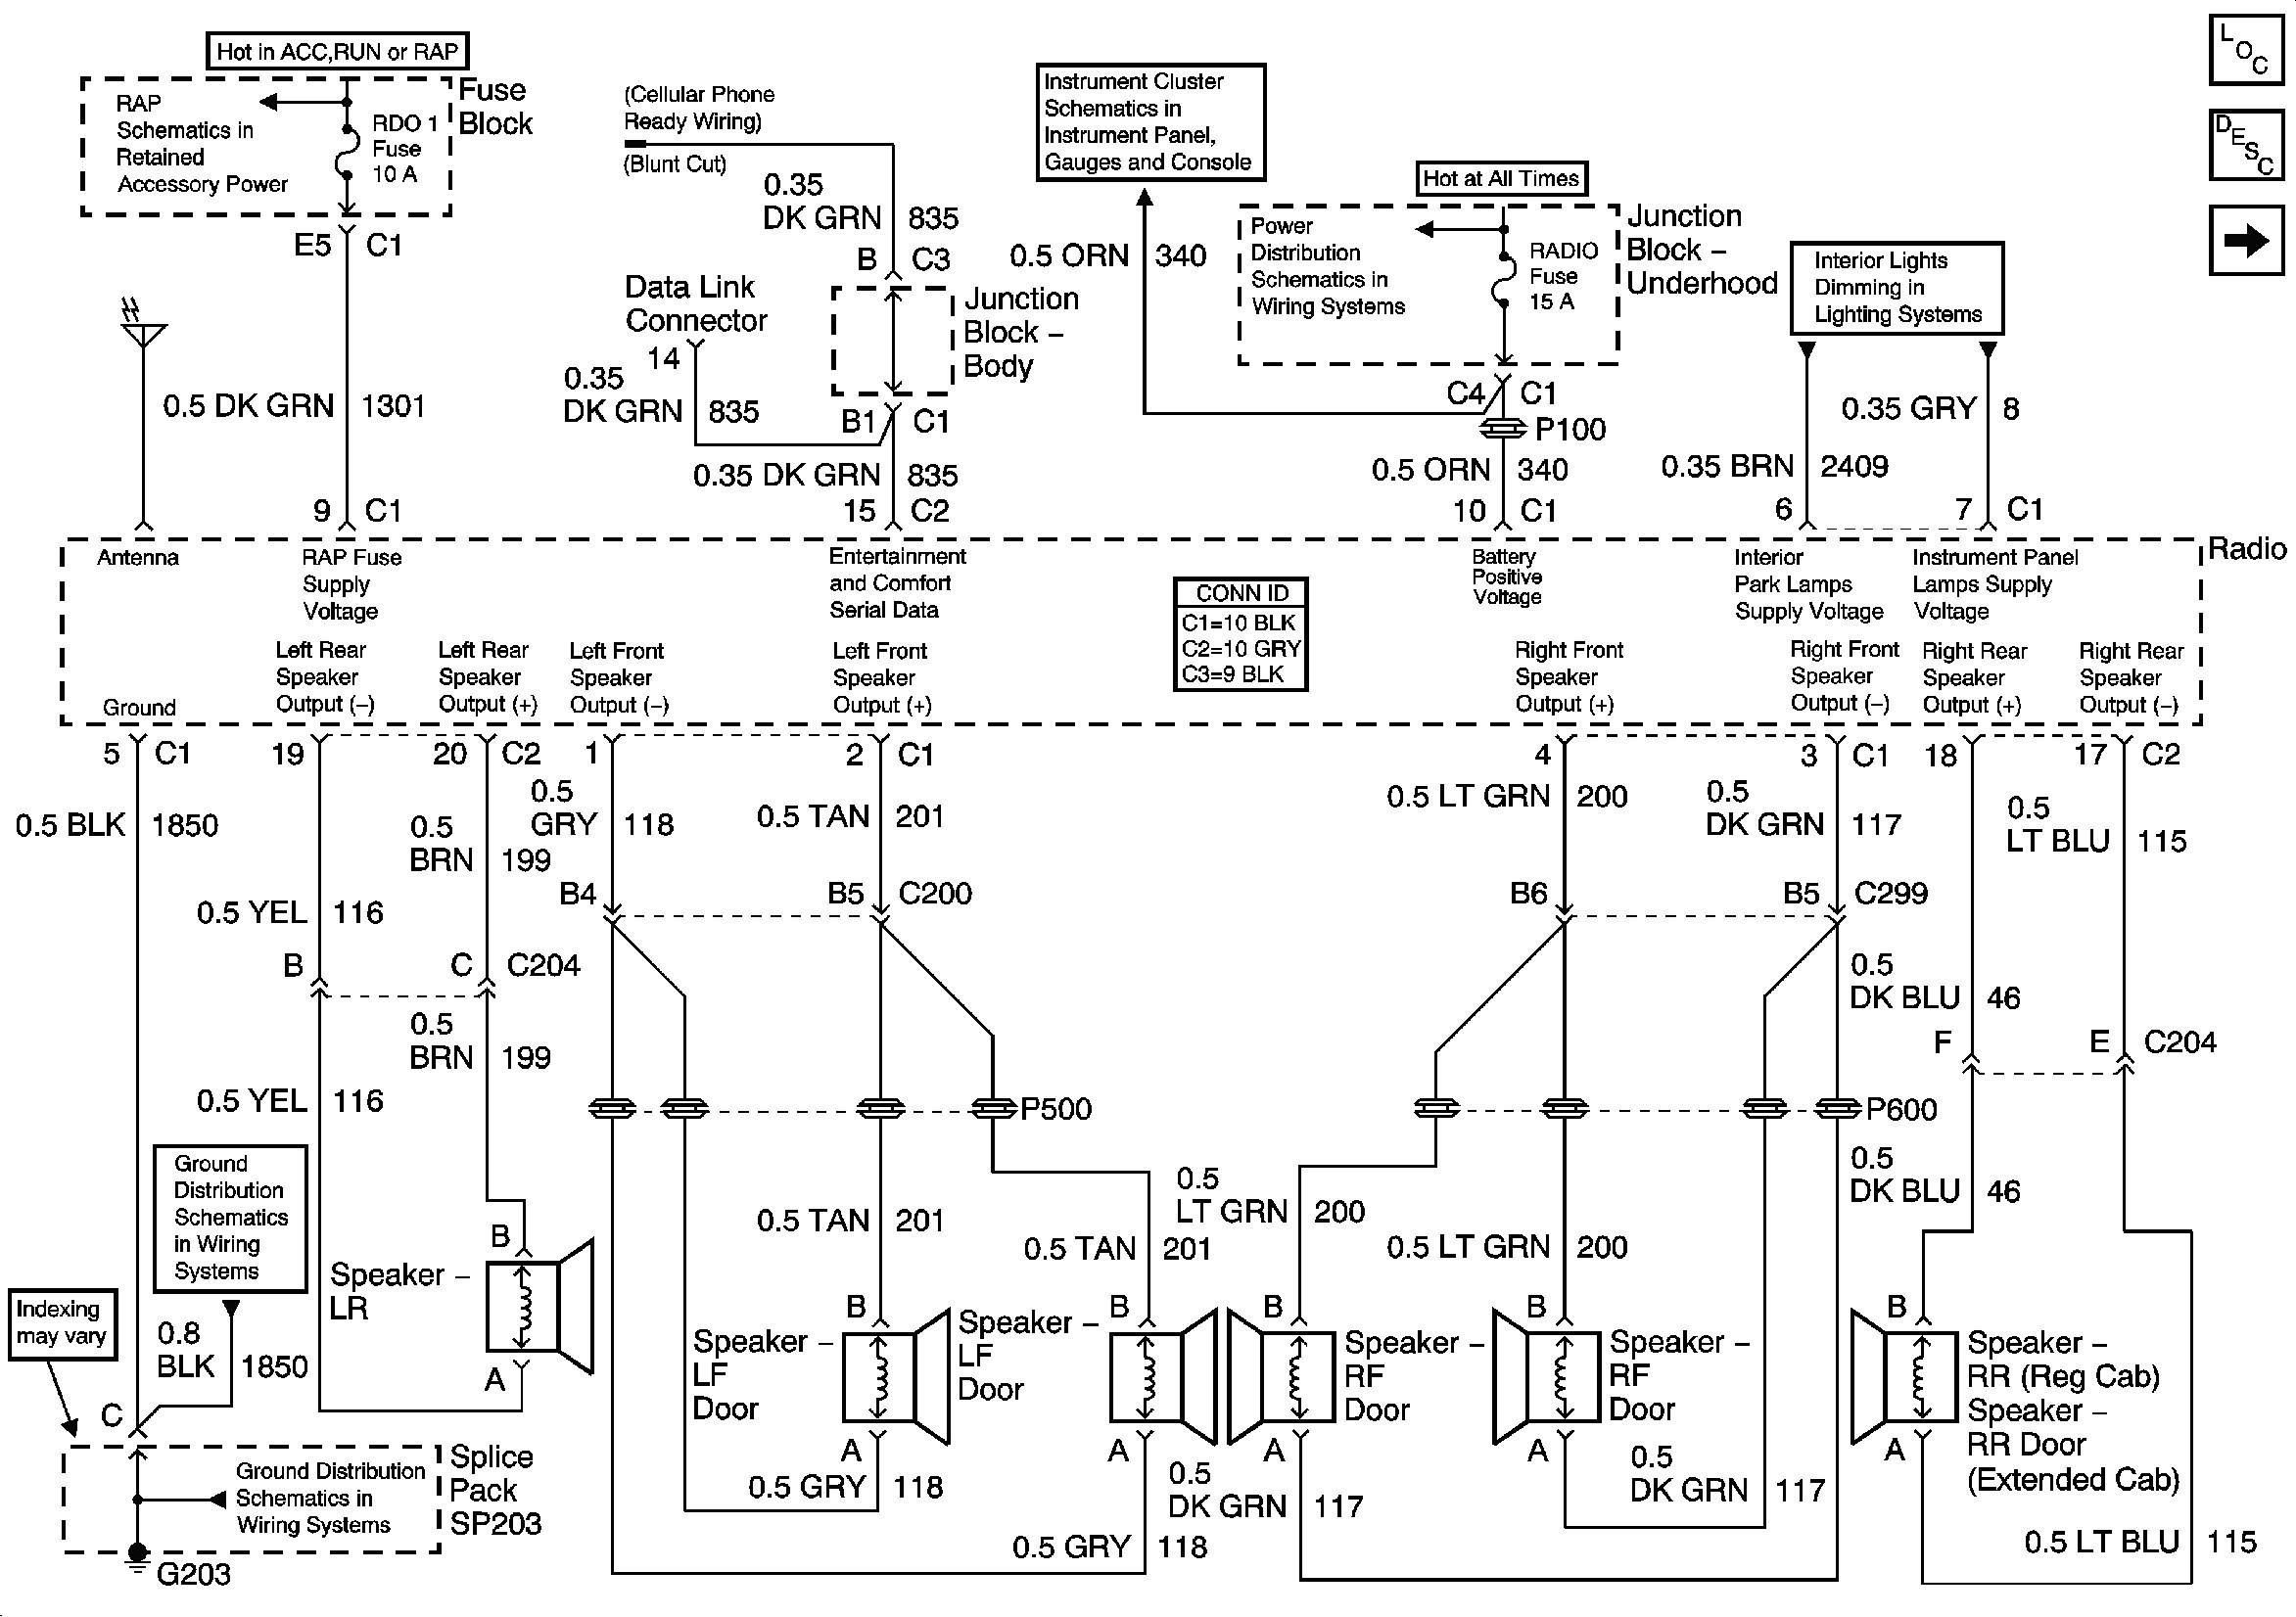 2005 tahoe wiring diagram pdf enthusiast wiring diagrams u2022 rh bwpartnersautos com 2005 chevy tahoe wiring harness diagram 2005 chevy tahoe wiring diagram